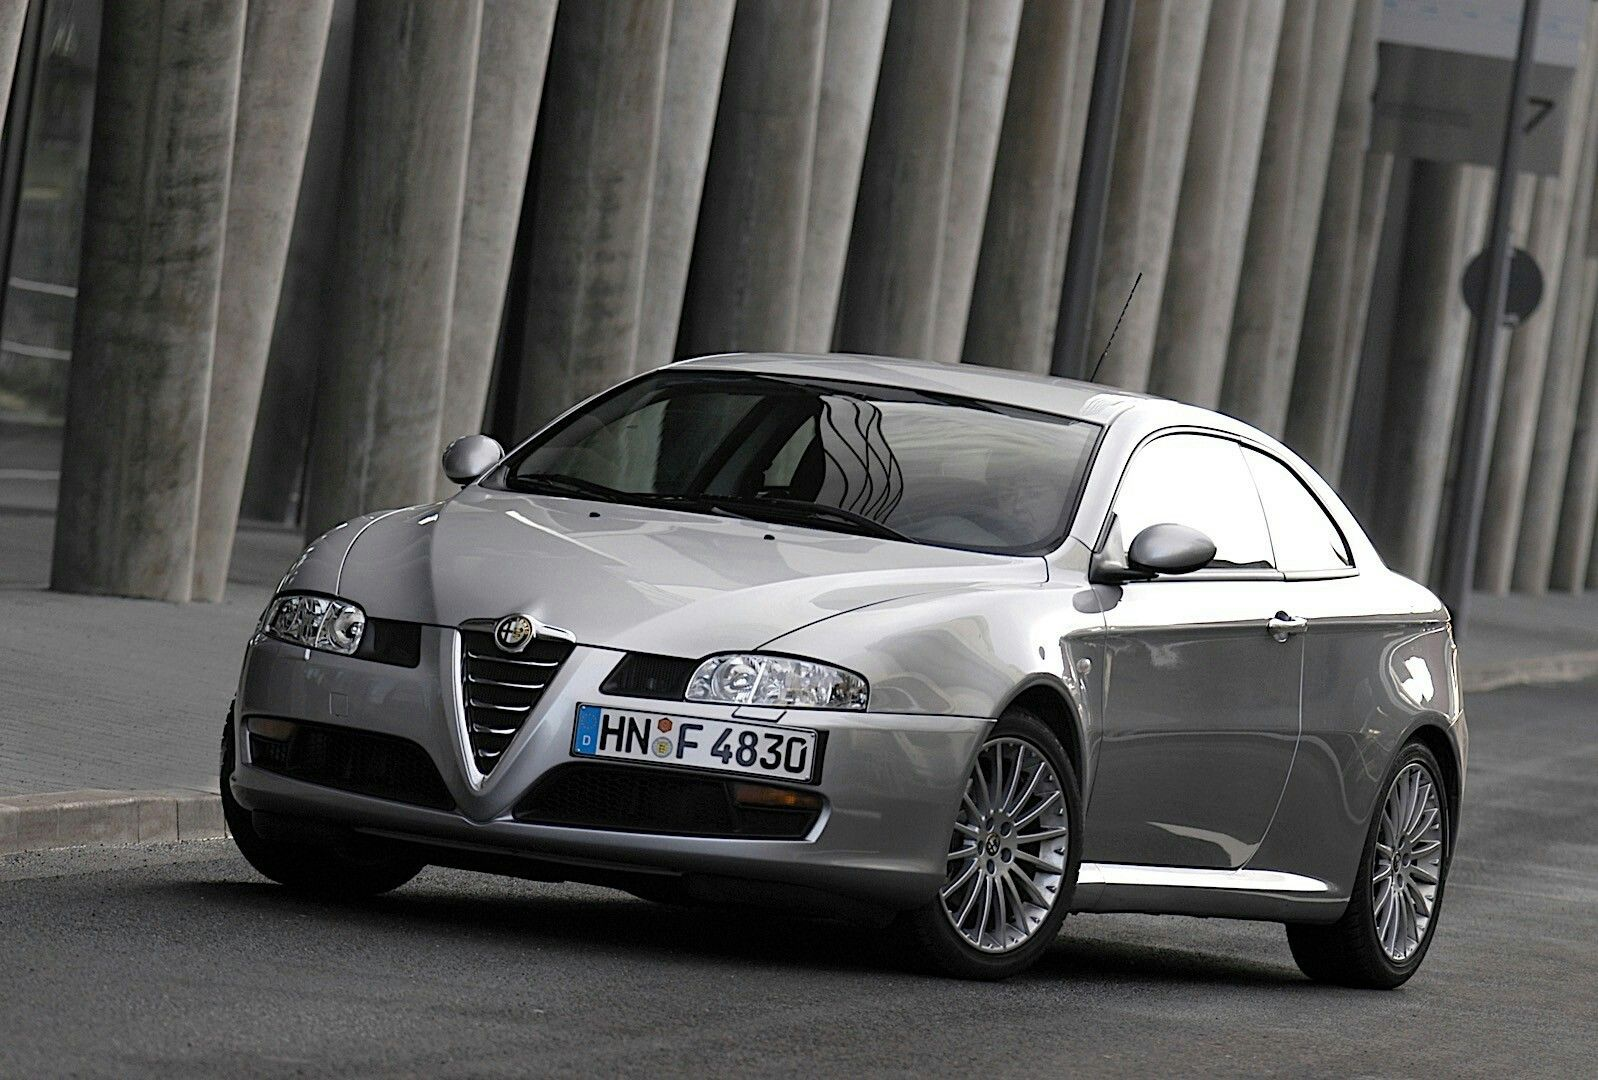 Pin by Marco van on Marco\'s Alfa Romeo GT site | Pinterest